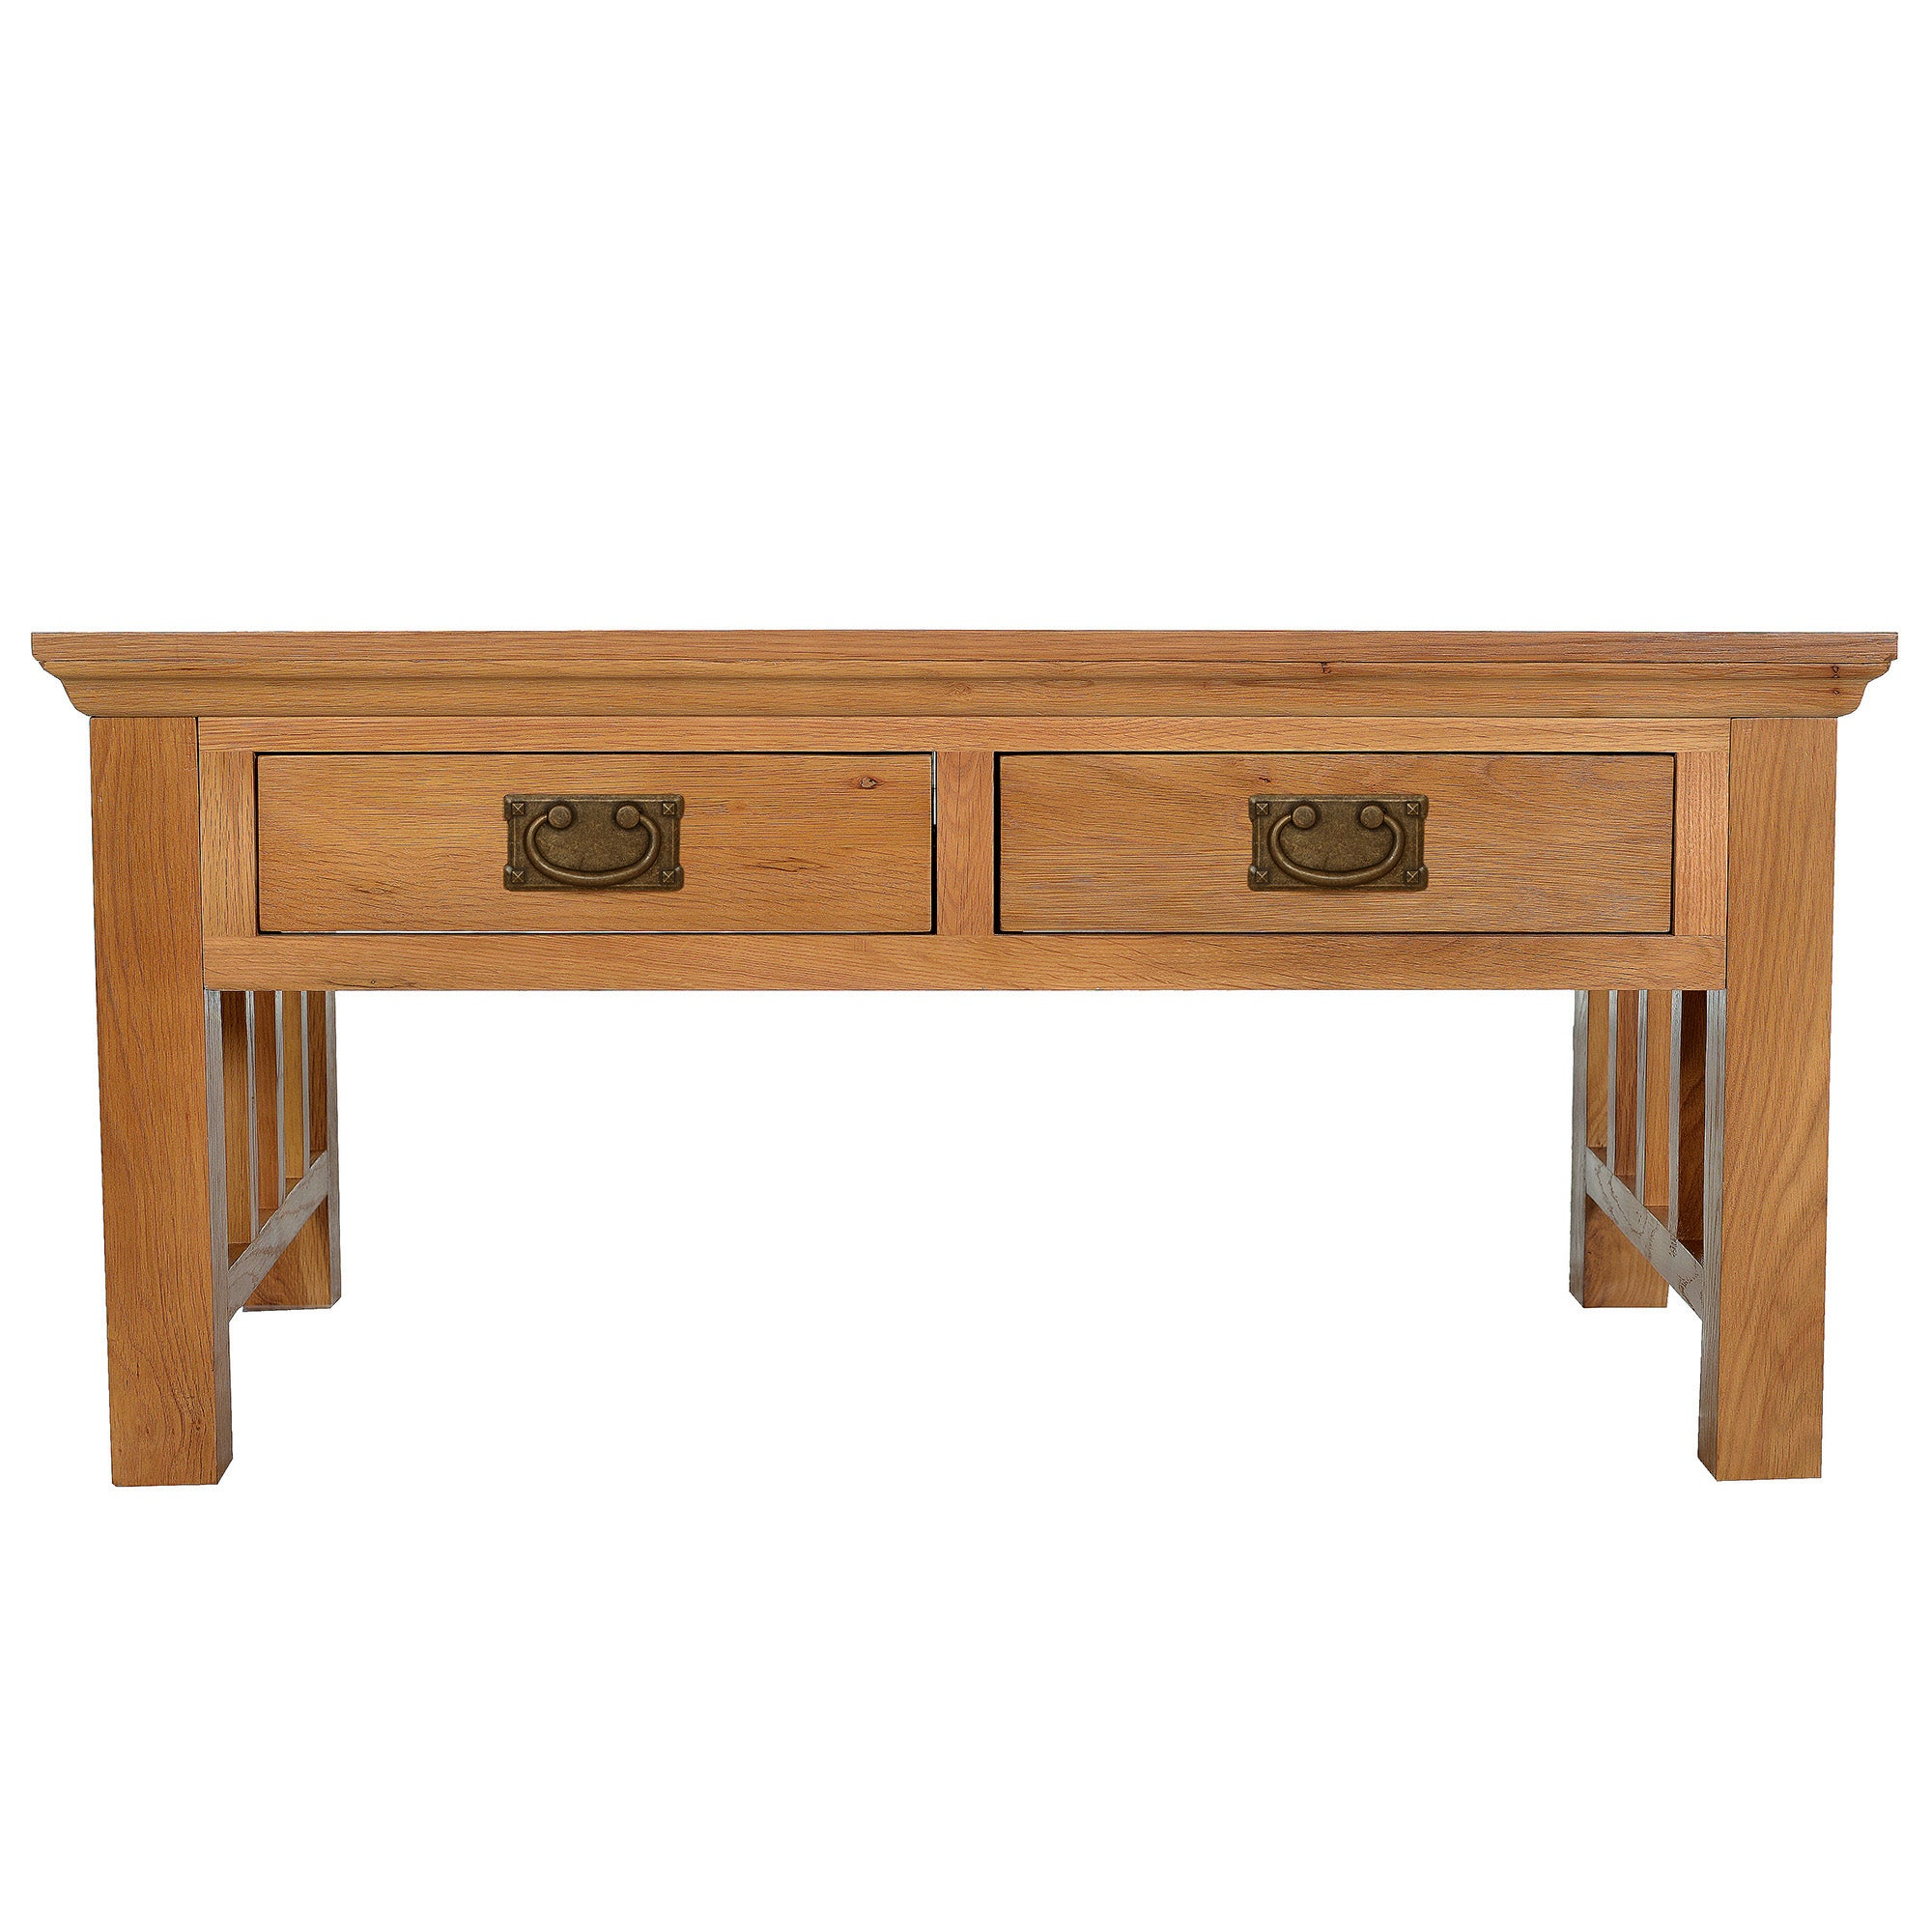 Dorchester Oak Coffee Table